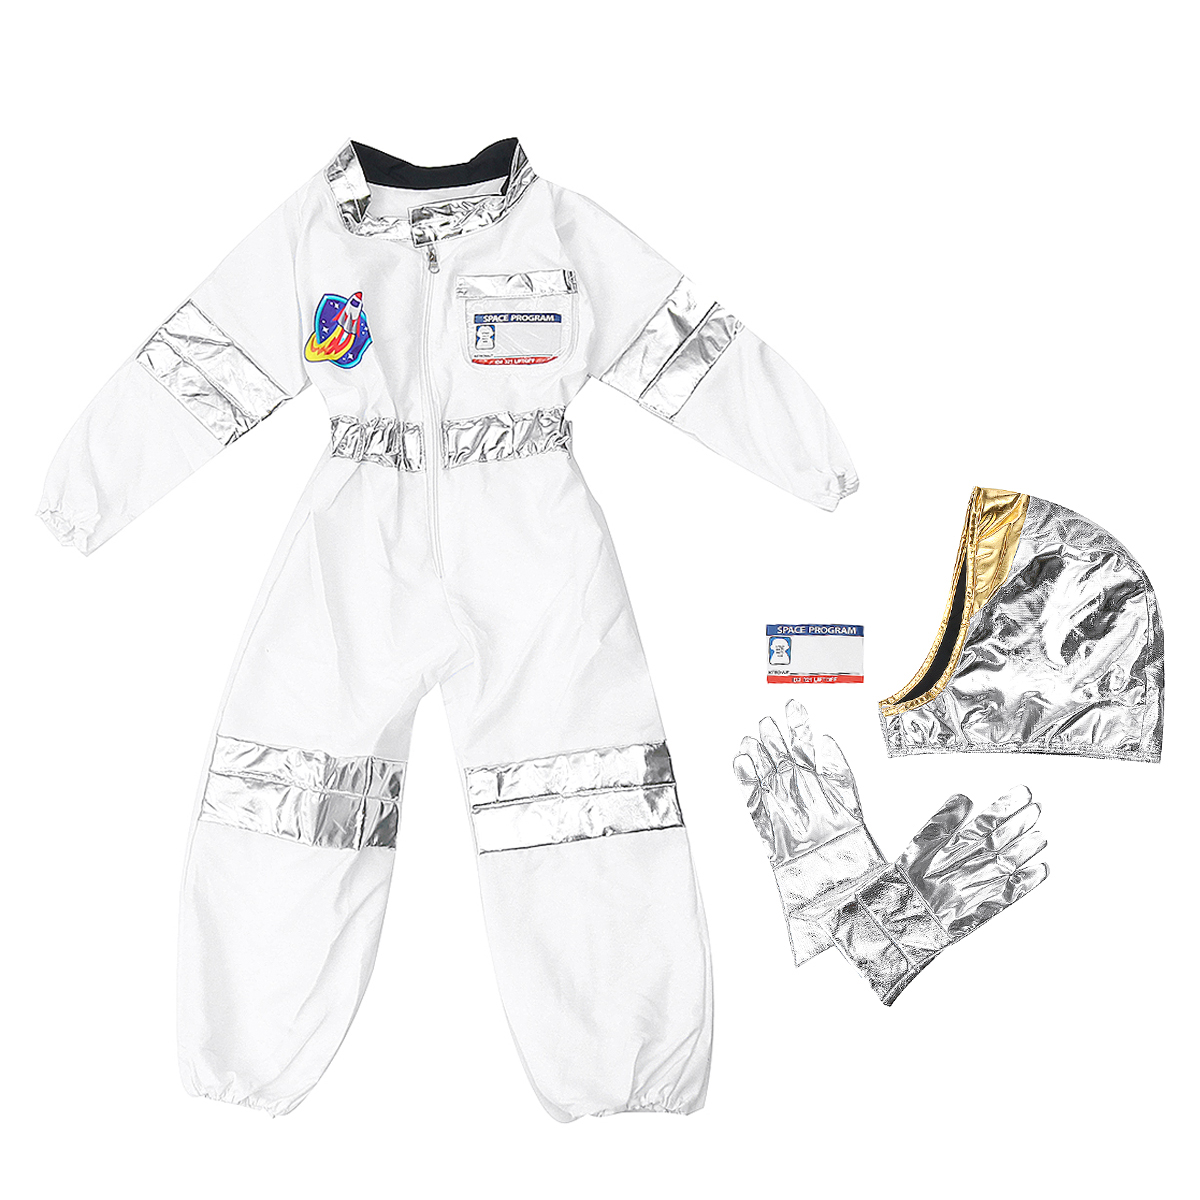 Childrens Astronaut Space Costume Space Pretend Dress Up Role Play Set for Kids Cosplay Ages 3-7 White